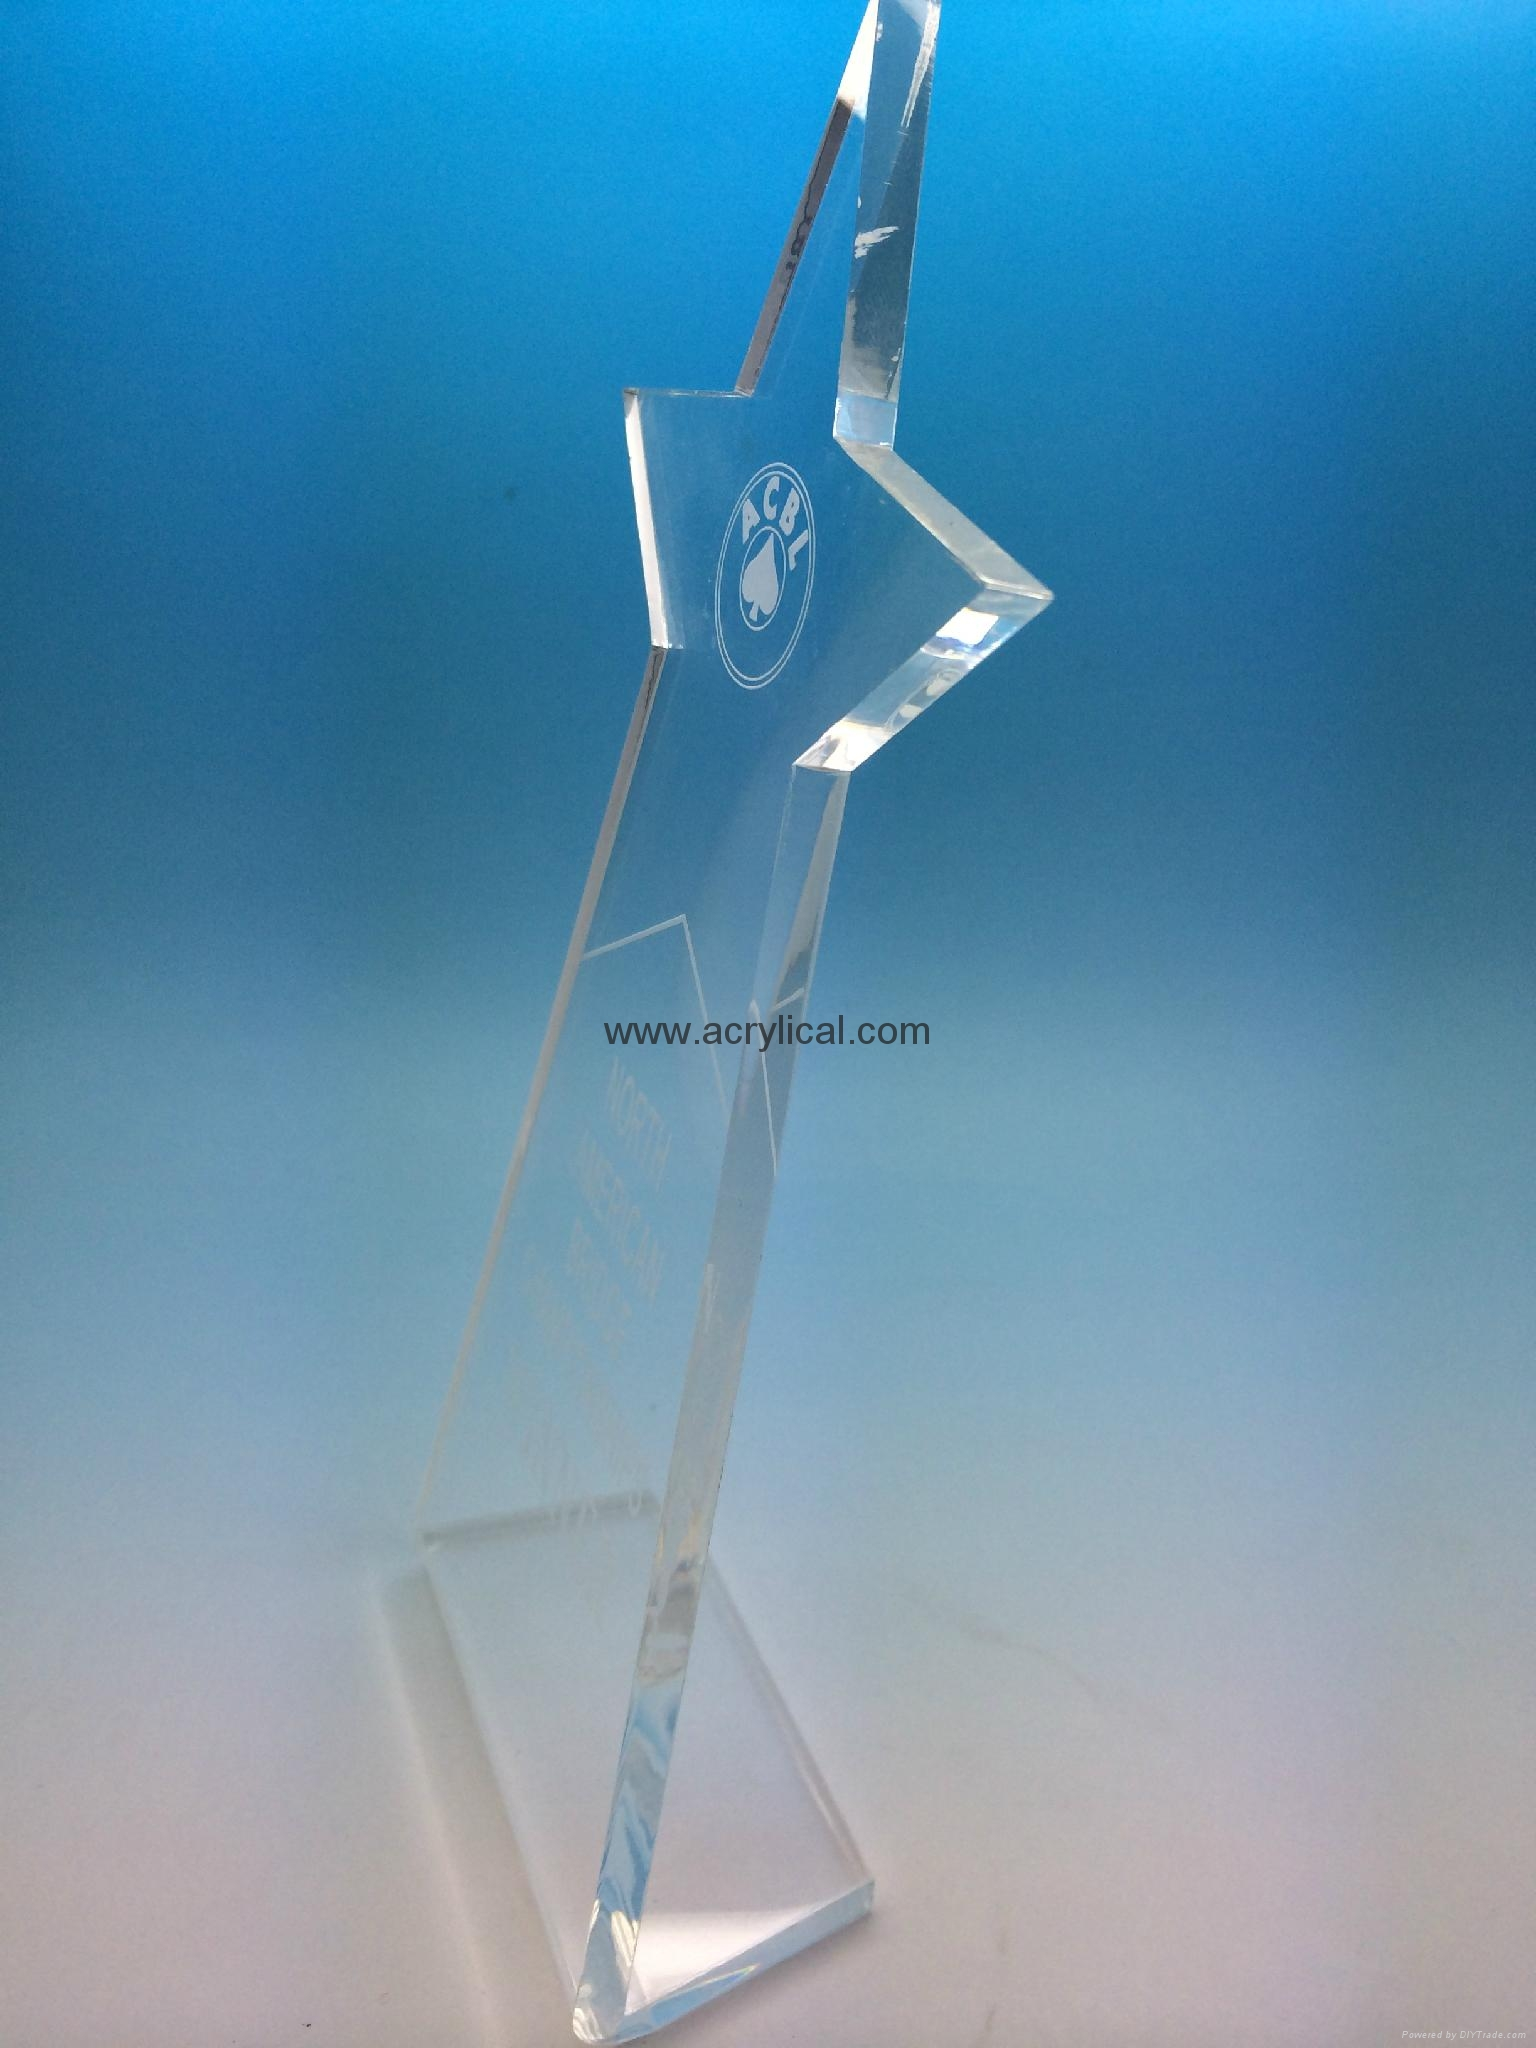 Awards made of acrylic, finely crafted and polished with expert detailed laser engraving. Great Acrylic Award products for Employee Recognition and your next Corporate Awards Program. Acrylic awards in several colors, styles, sizes and shapes!